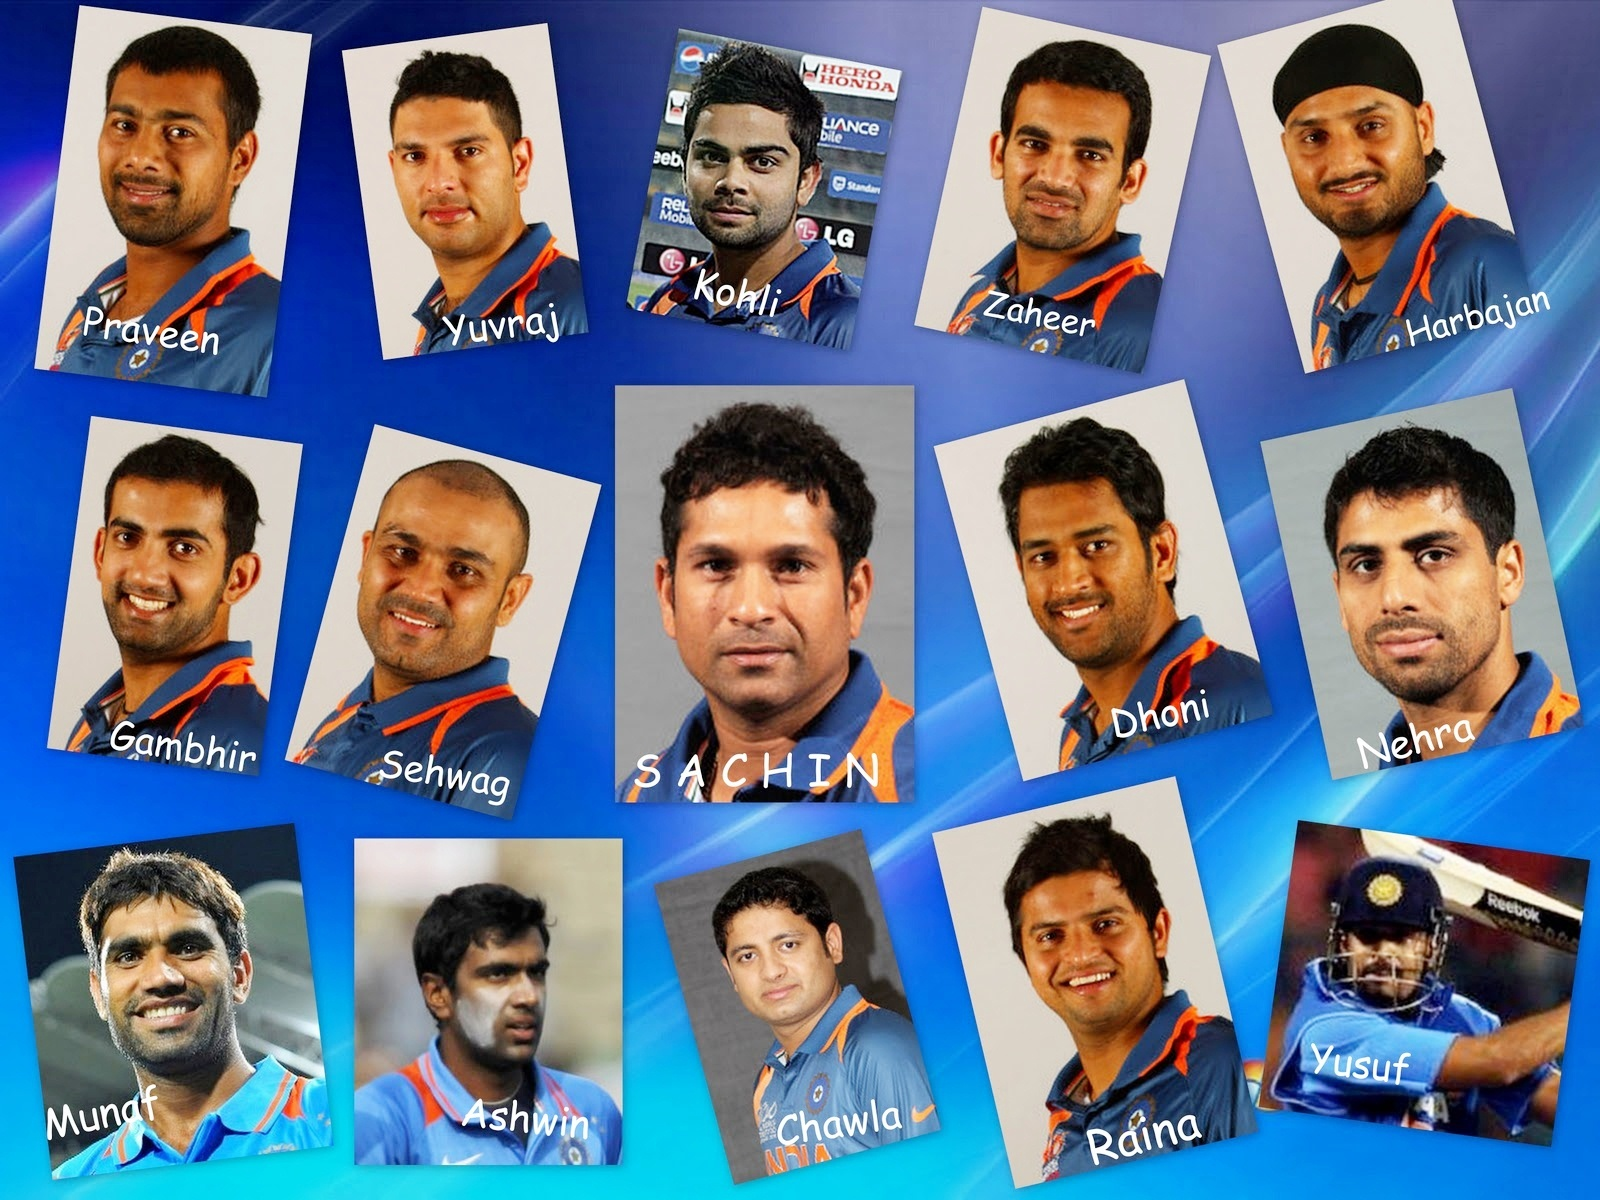 Indian Cricket Team Players: GK: July 2011